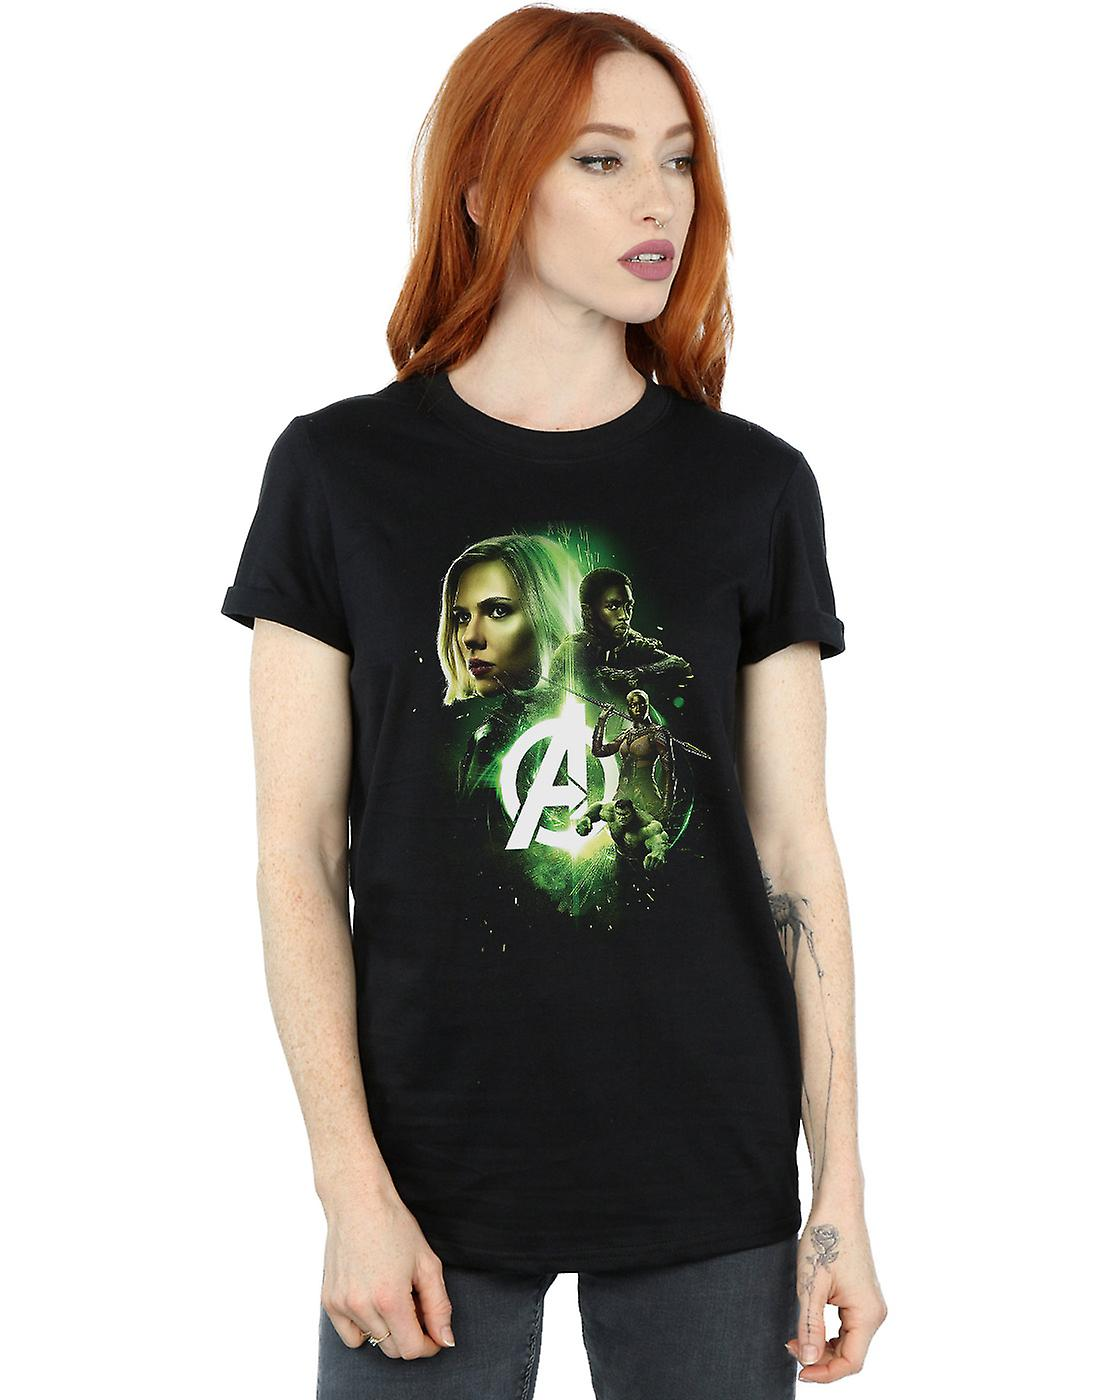 Marvel Women's Avengers Infinity War Widow Panther Team Up Boyfriend Fit T-Shirt